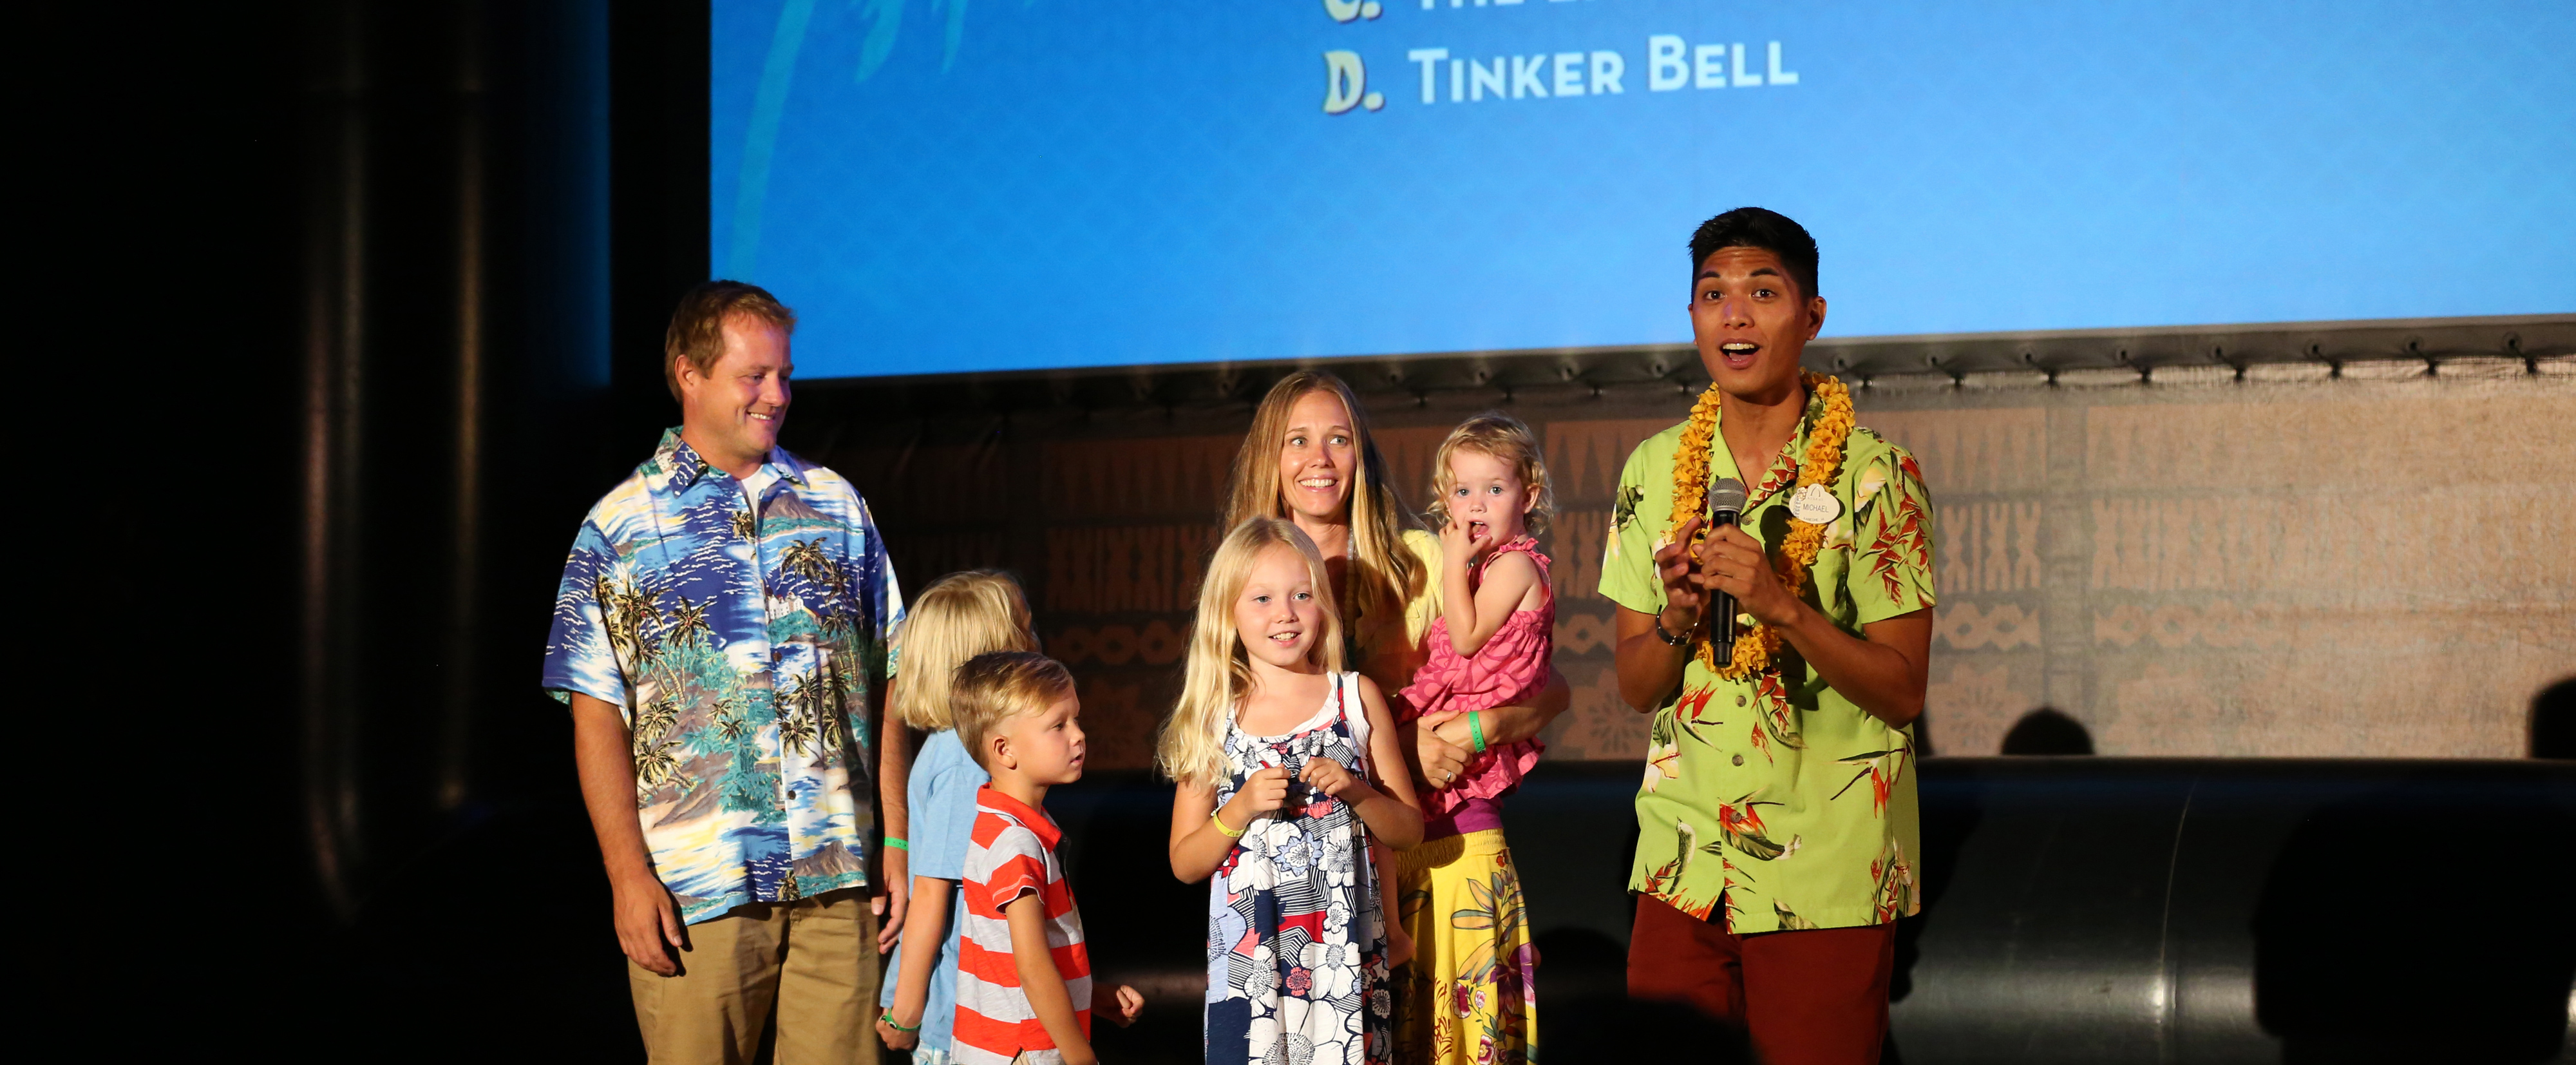 An enthusiastic Cast Member hosts Disney trivia onstage with a family of 6, including 3 girls and a boy